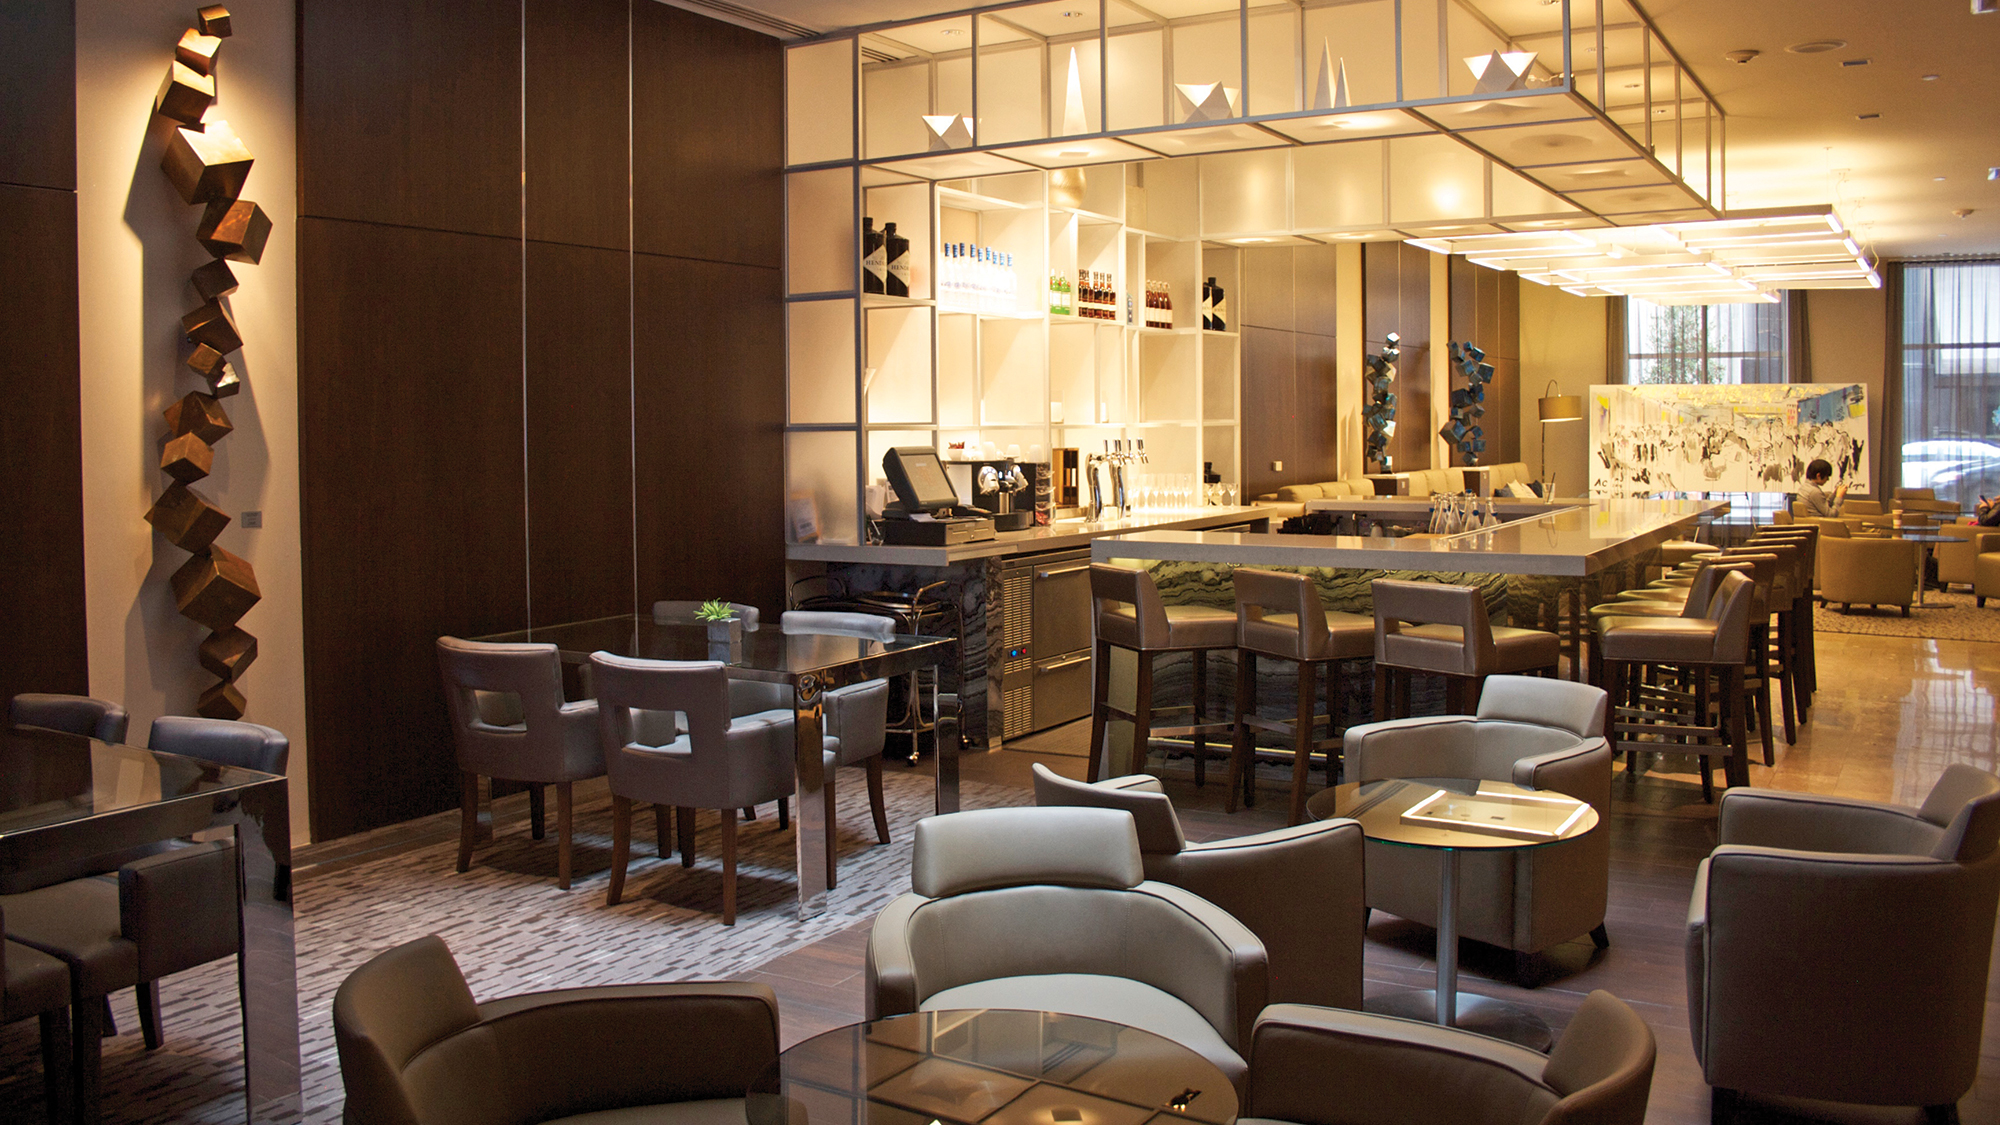 Ac Hotel' Continental Comforts Travel Weekly